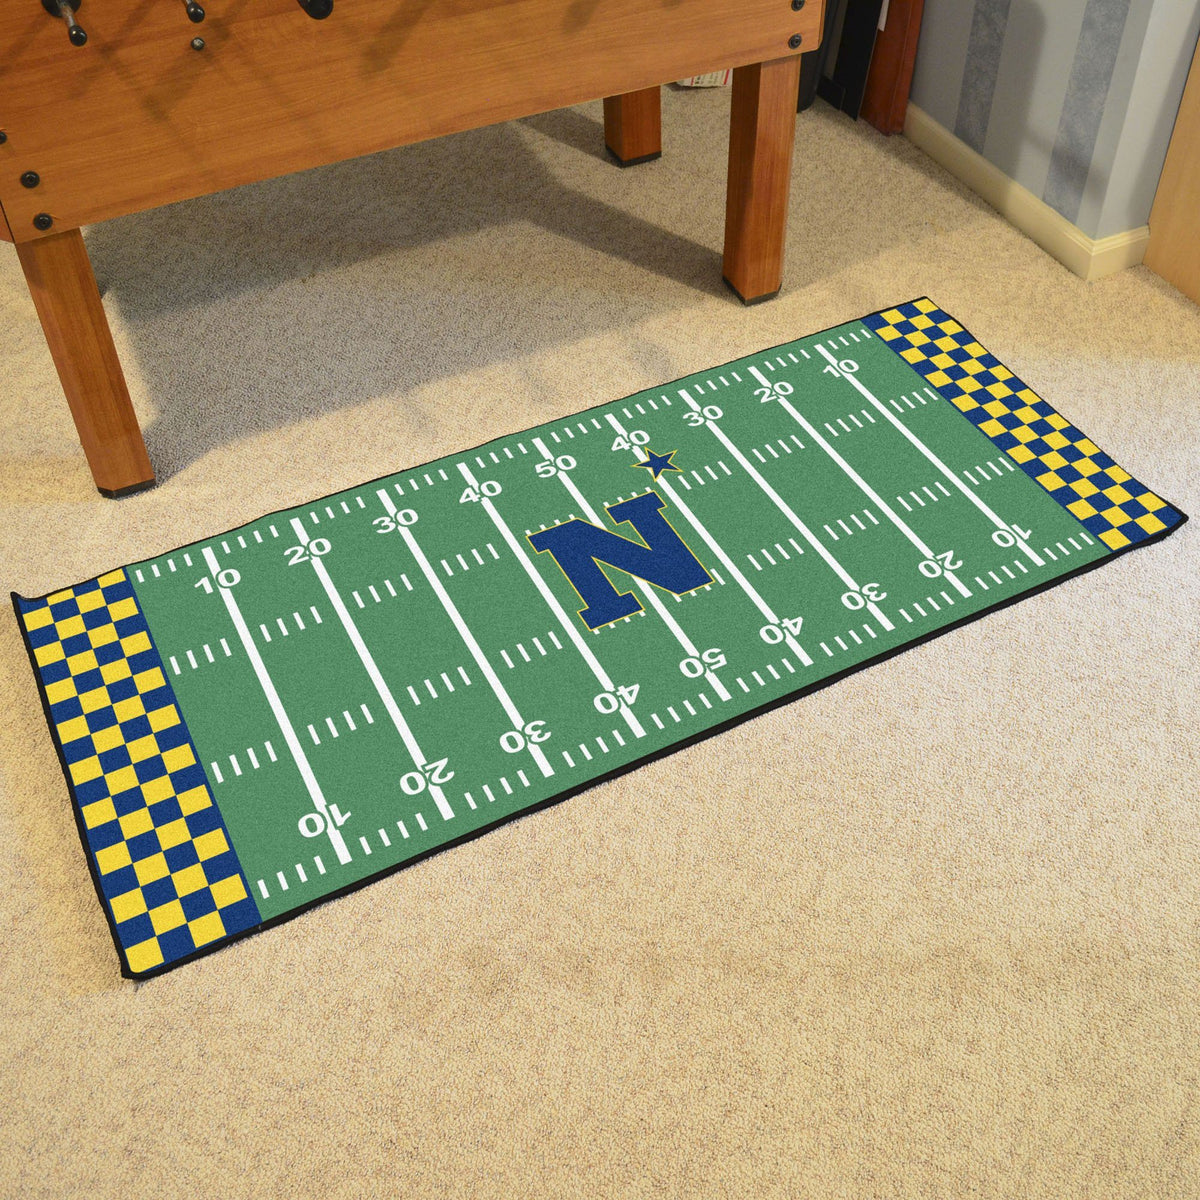 Collegiate - Football Field Runner Collegiate Mats, Rectangular Mats, Football Field Runner, Collegiate, Home Fan Mats Navy